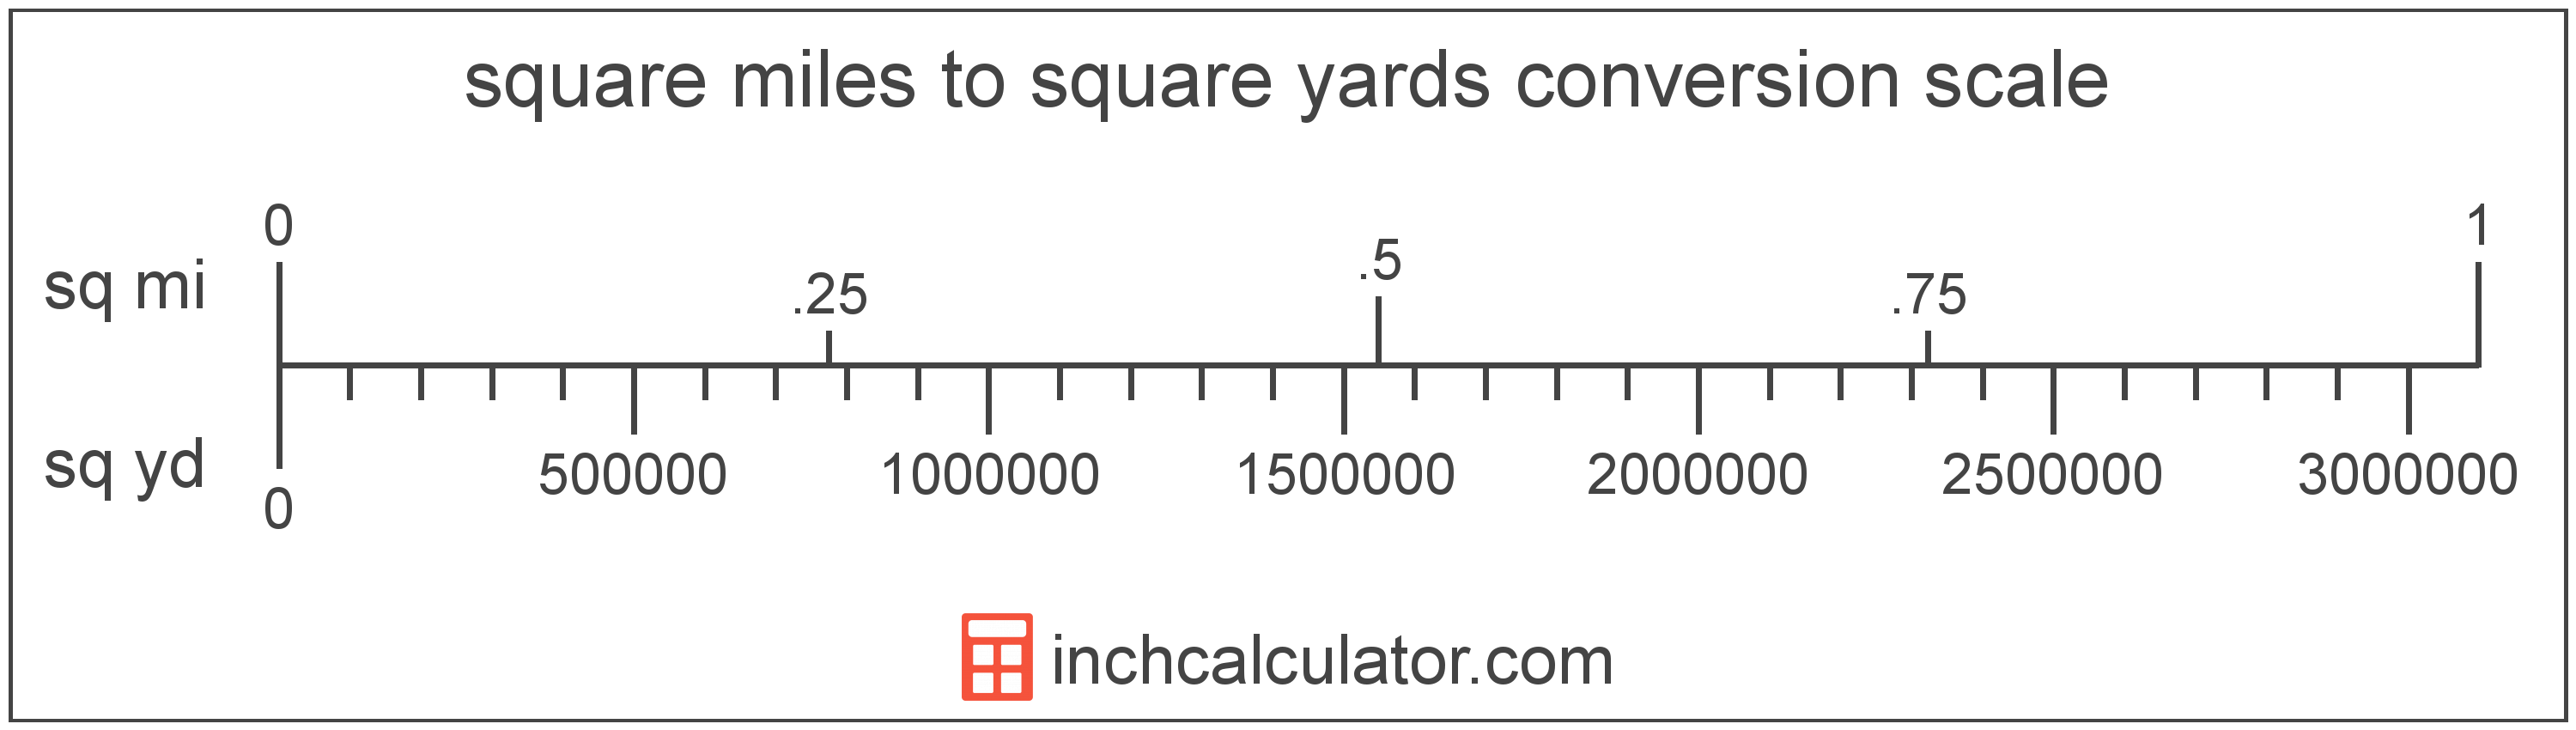 conversion scale showing square yards and equivalent square miles area values